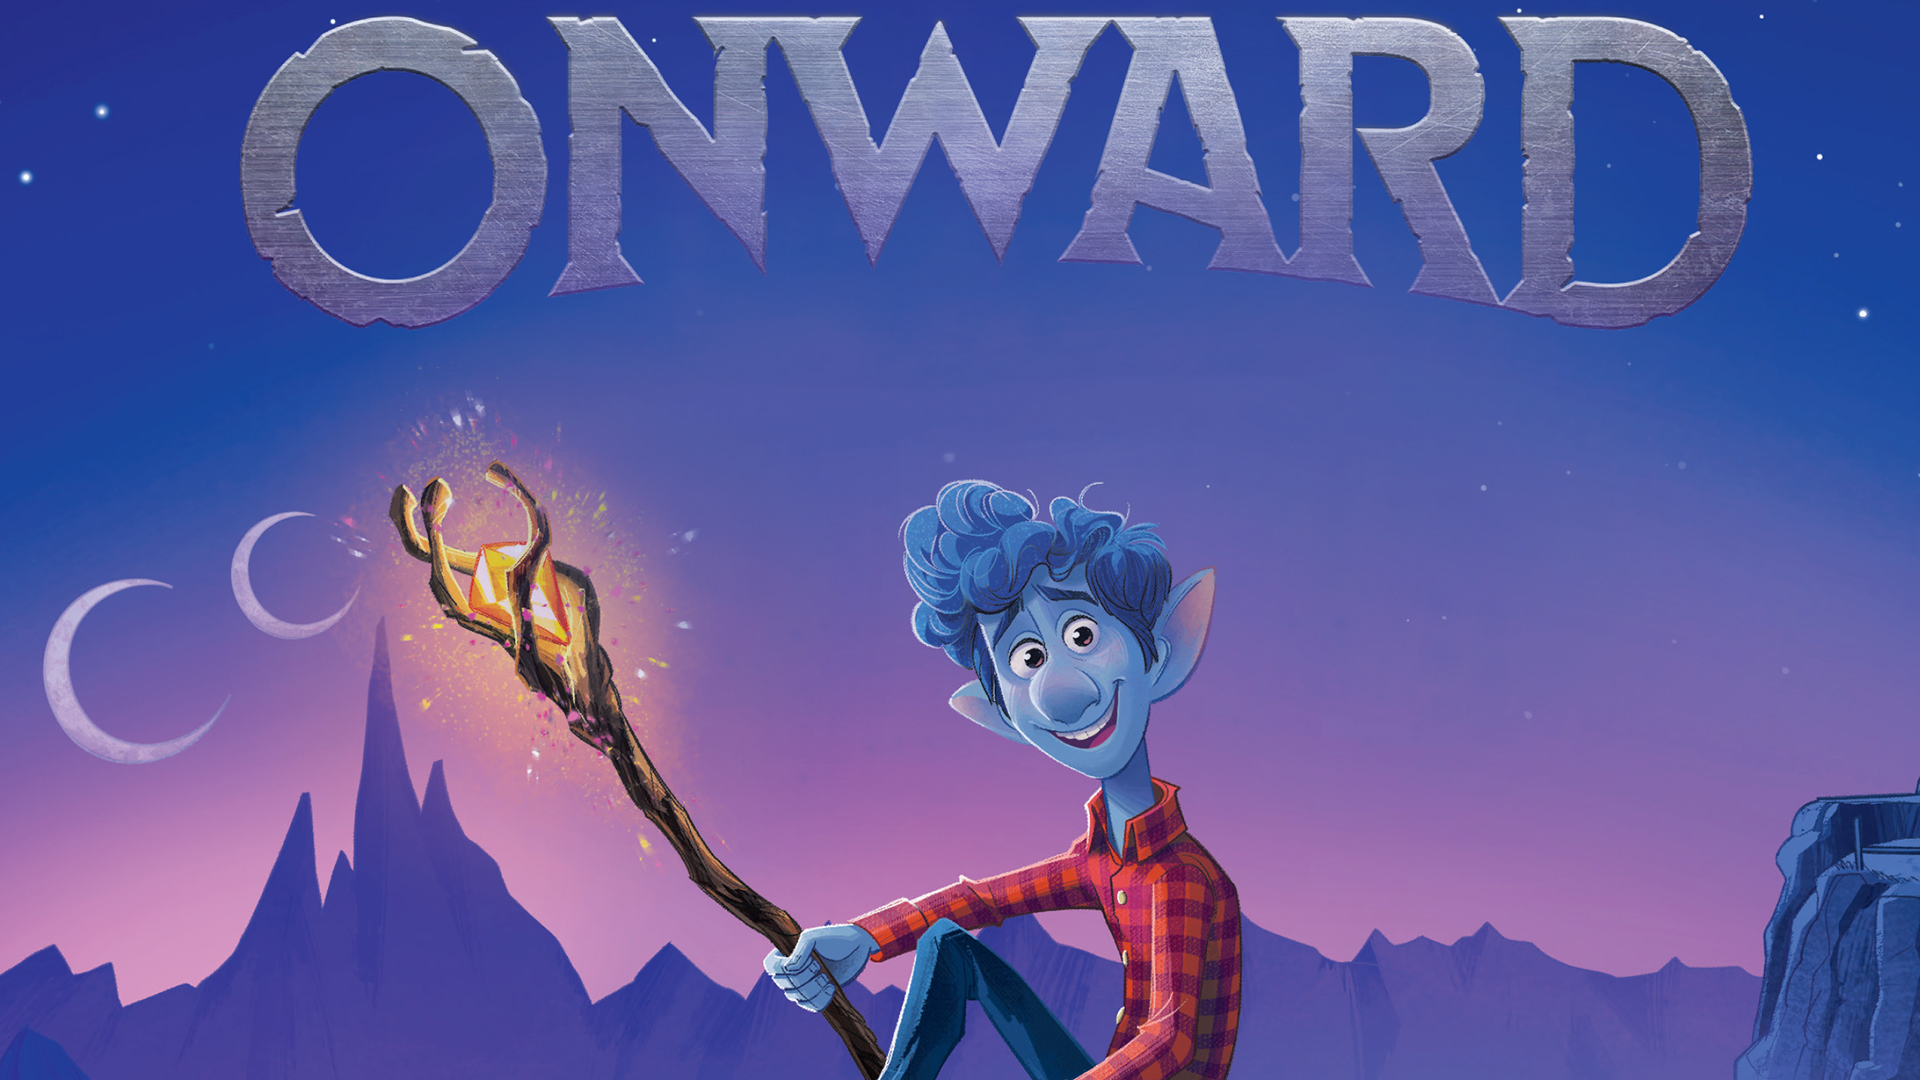 Pixar Onward HD wallpapers   YouLoveItcom 1920x1080